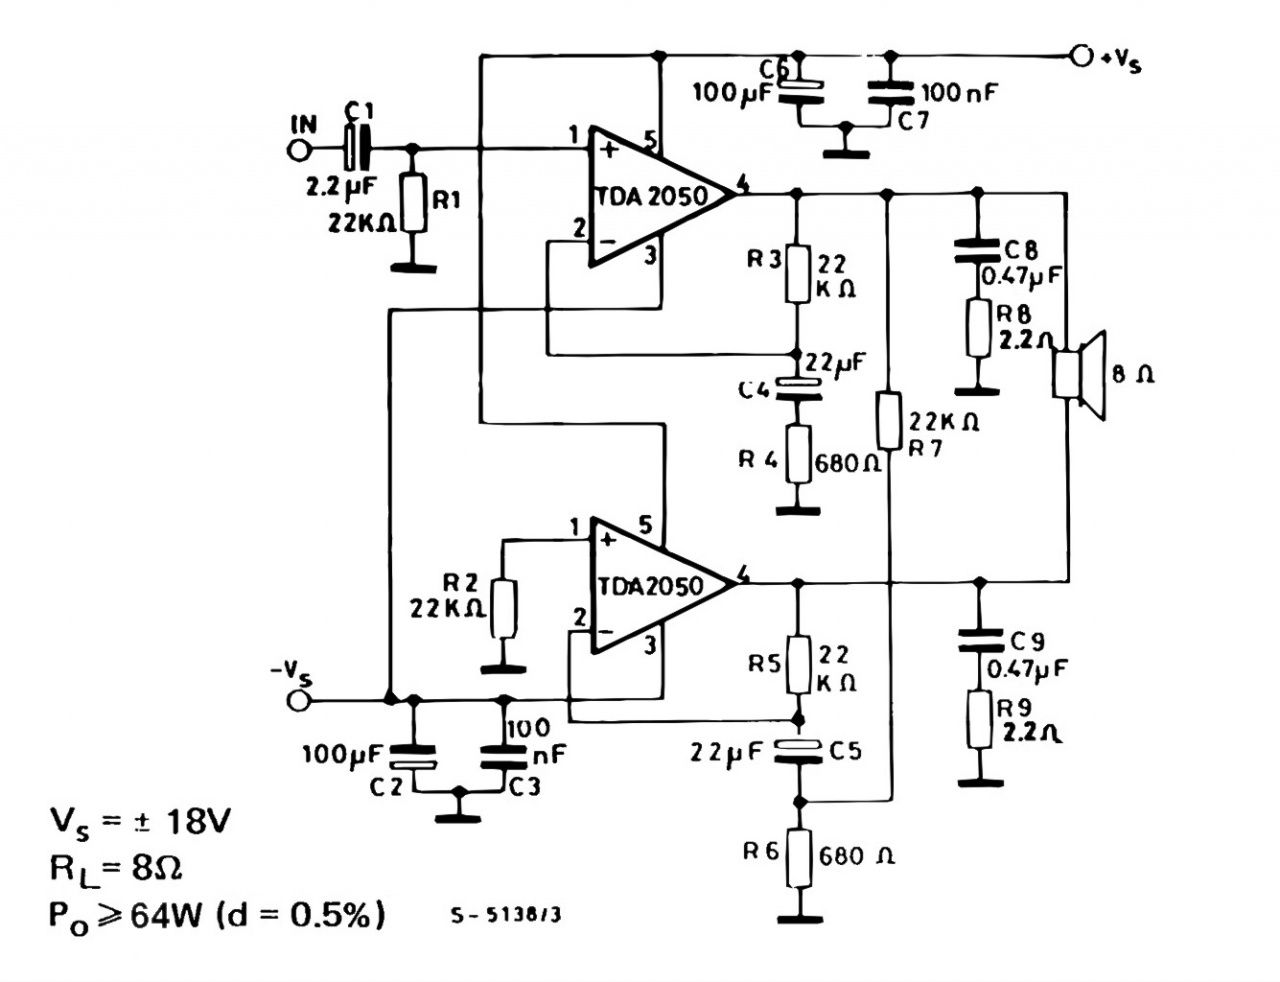 tda2050 bridge amplifier circuit google search projects to trytda2050 bridge amplifier circuit google search guitar amp, circuits, bridge, audio,